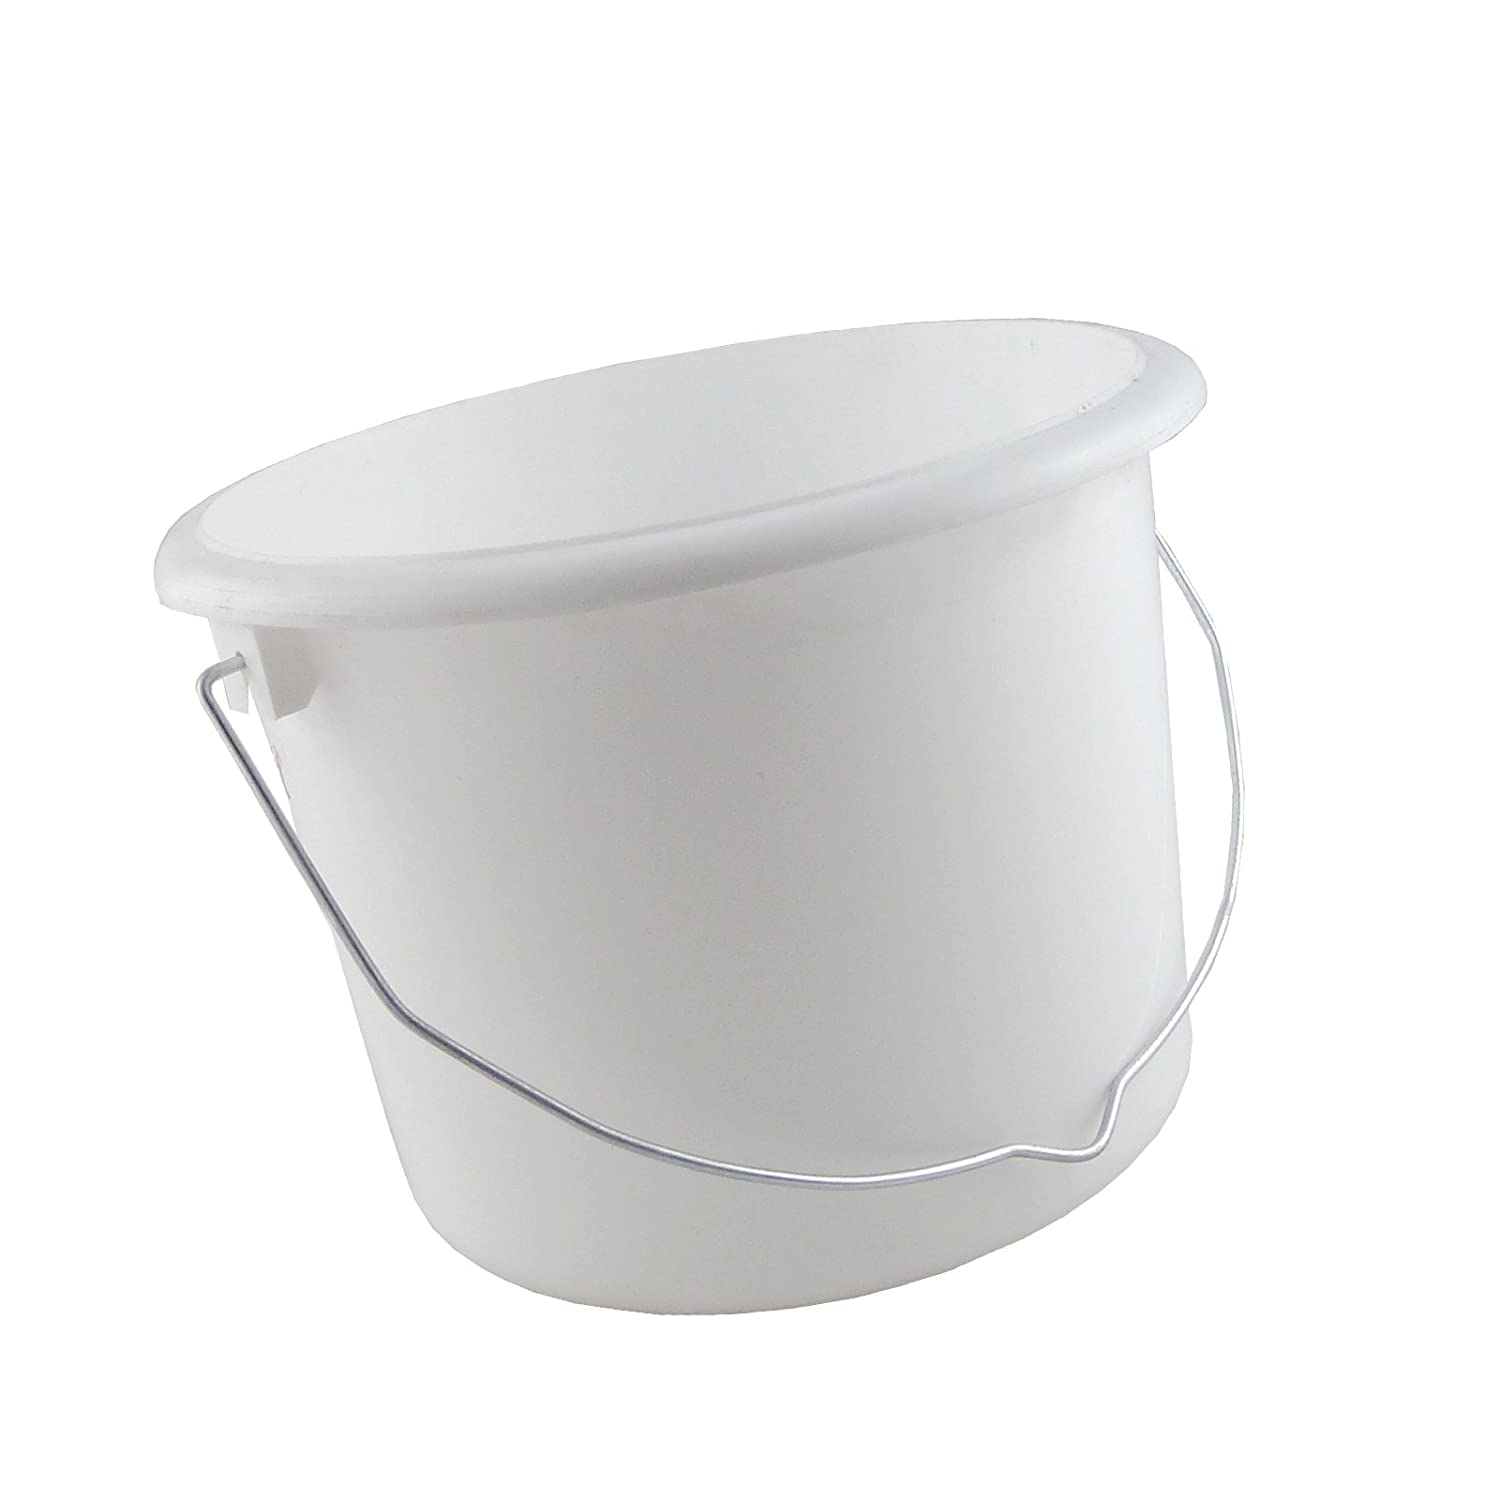 White Paint Kettle In 3 Assorted Sizes - 1L / 2L / 5L (2 Litres)